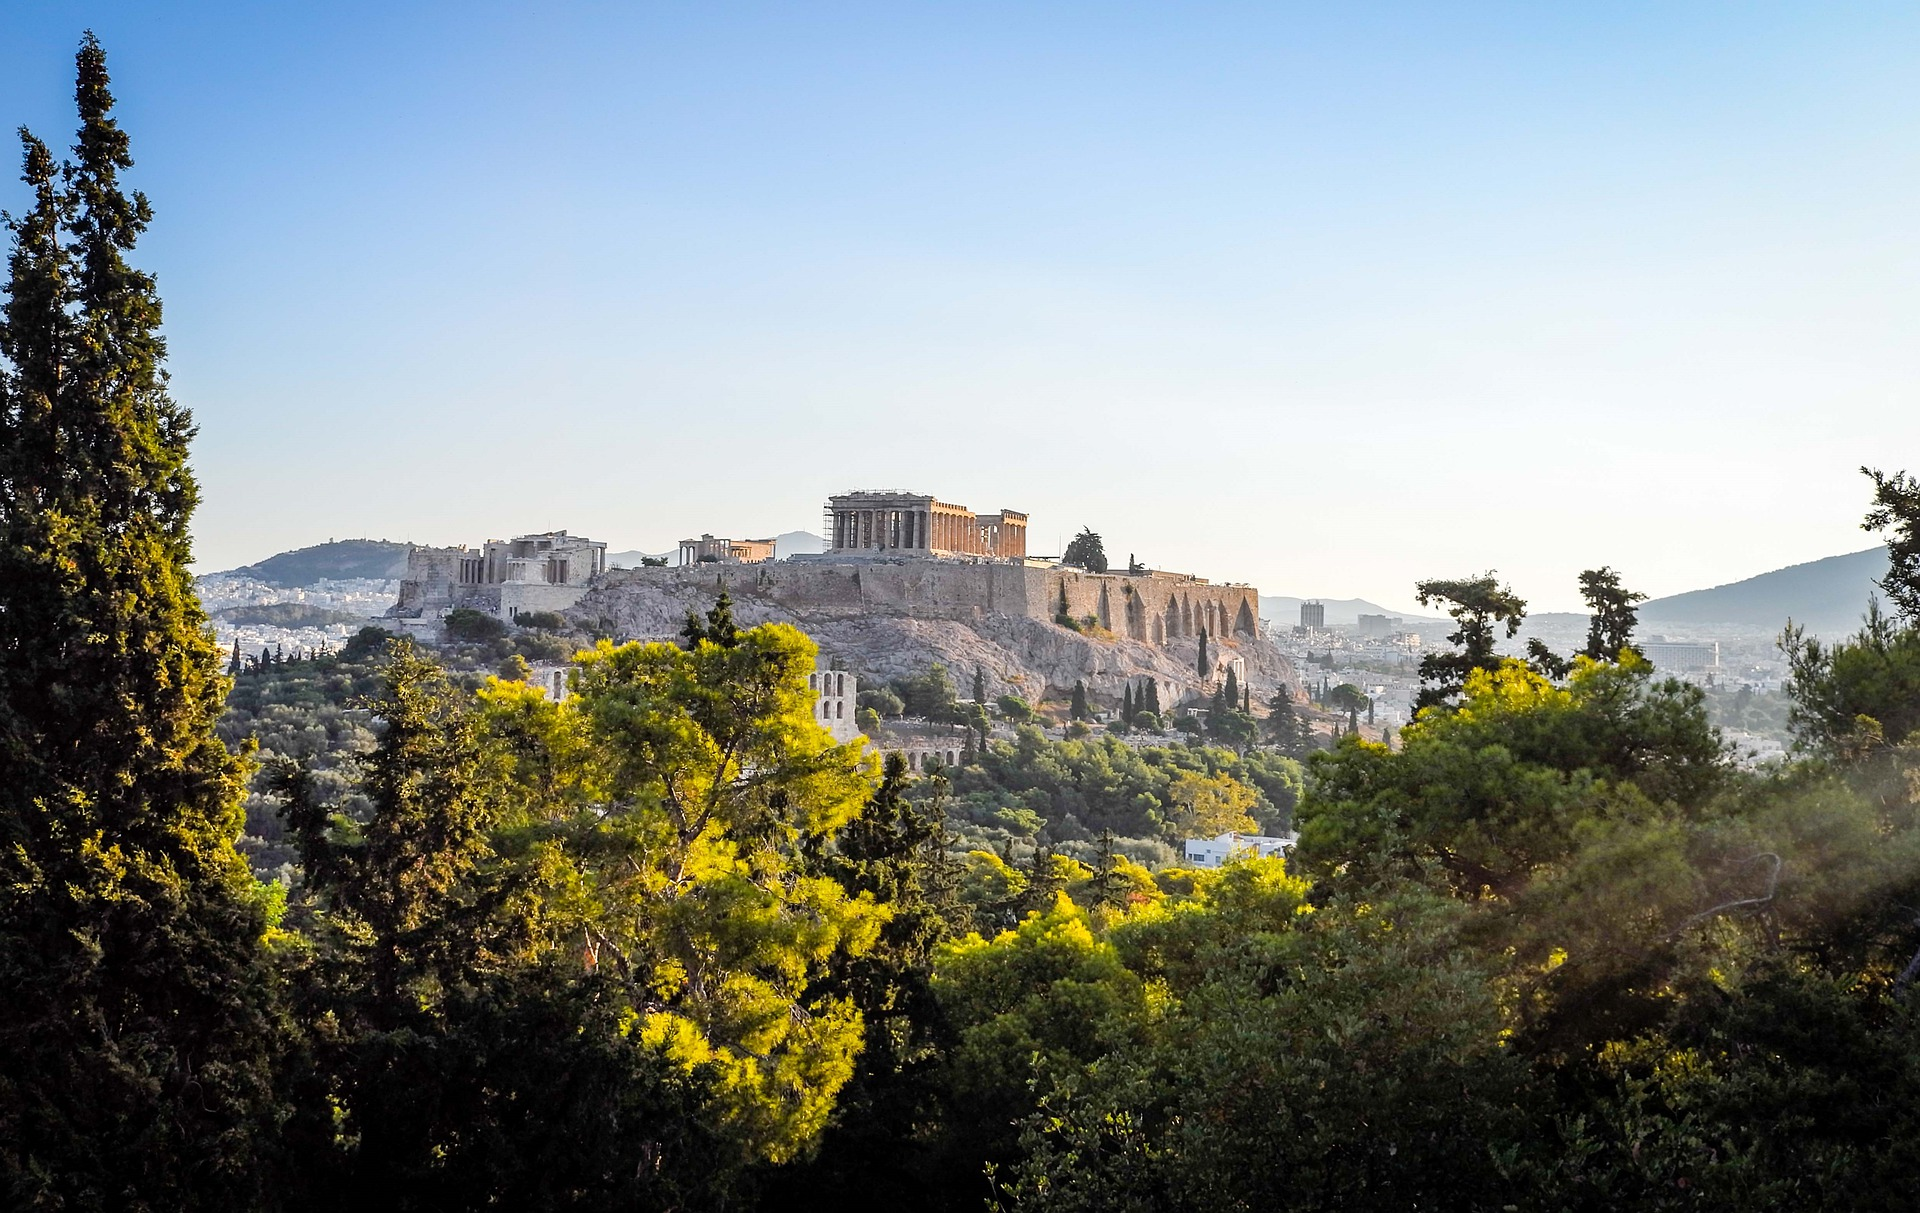 shot of the Acropolis in Athens at a distance with trees in the foreground